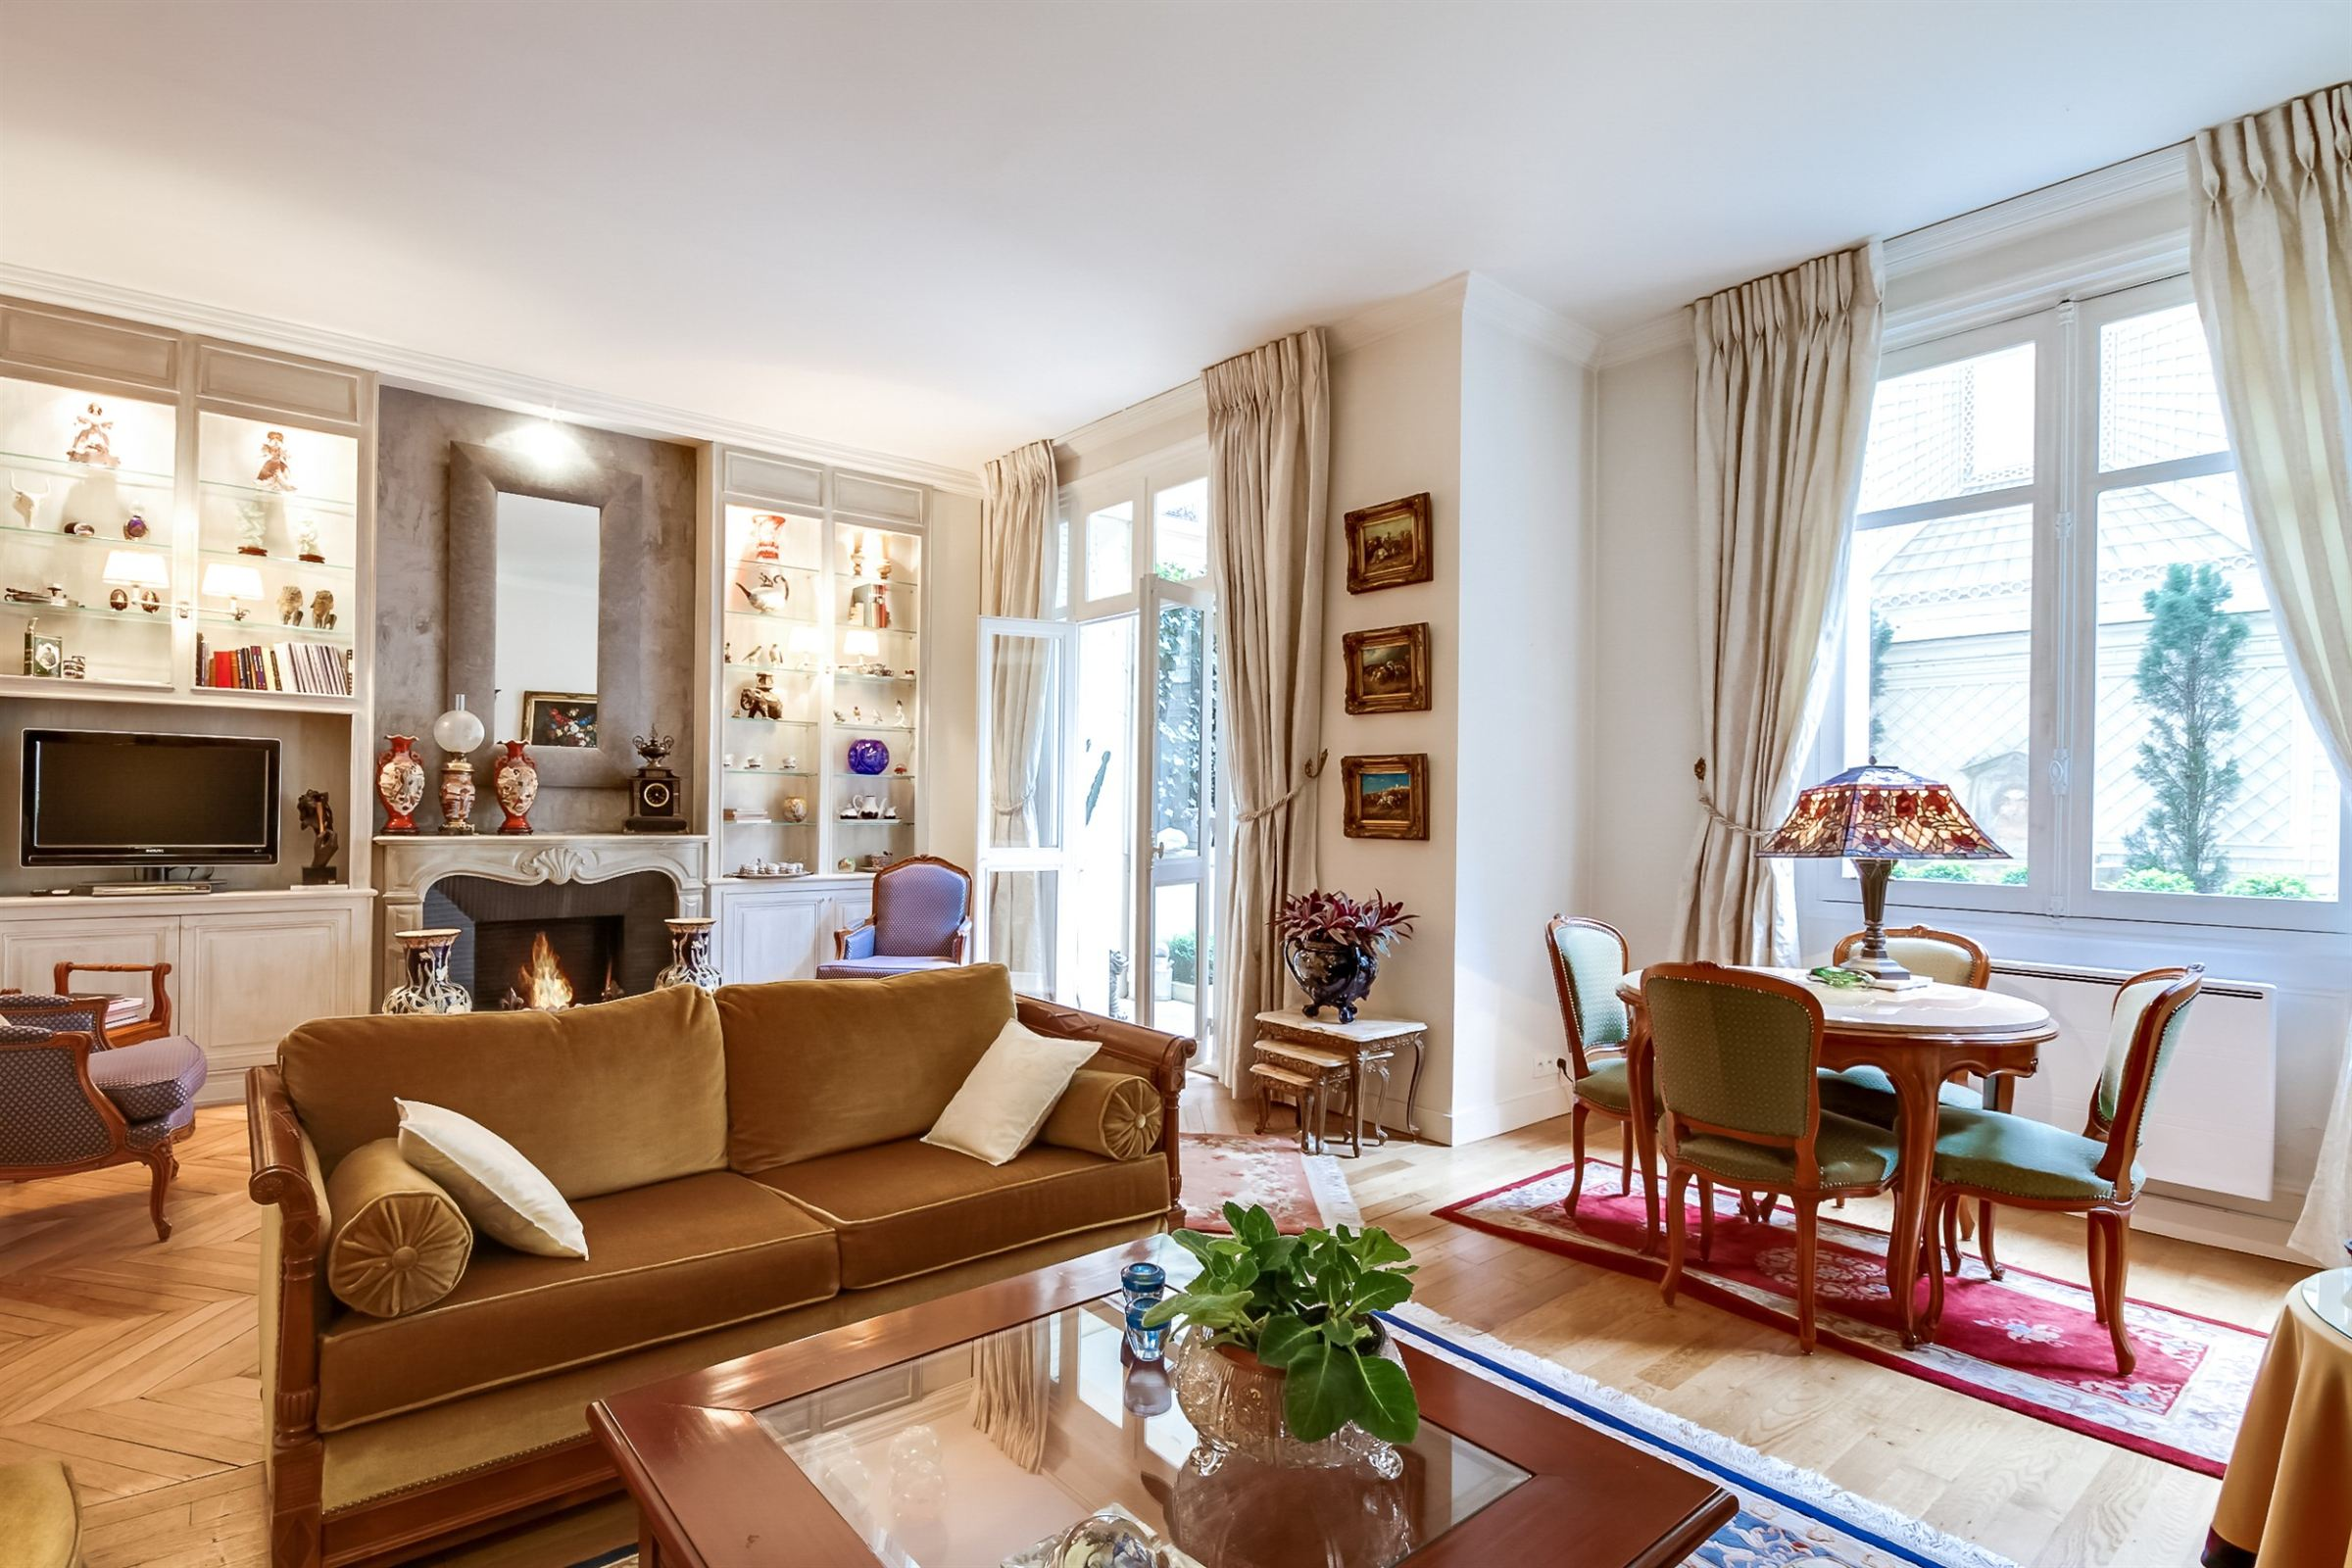 Property For Sale at Paris 16 - OCDE. Apartment. Countrified atmosphere